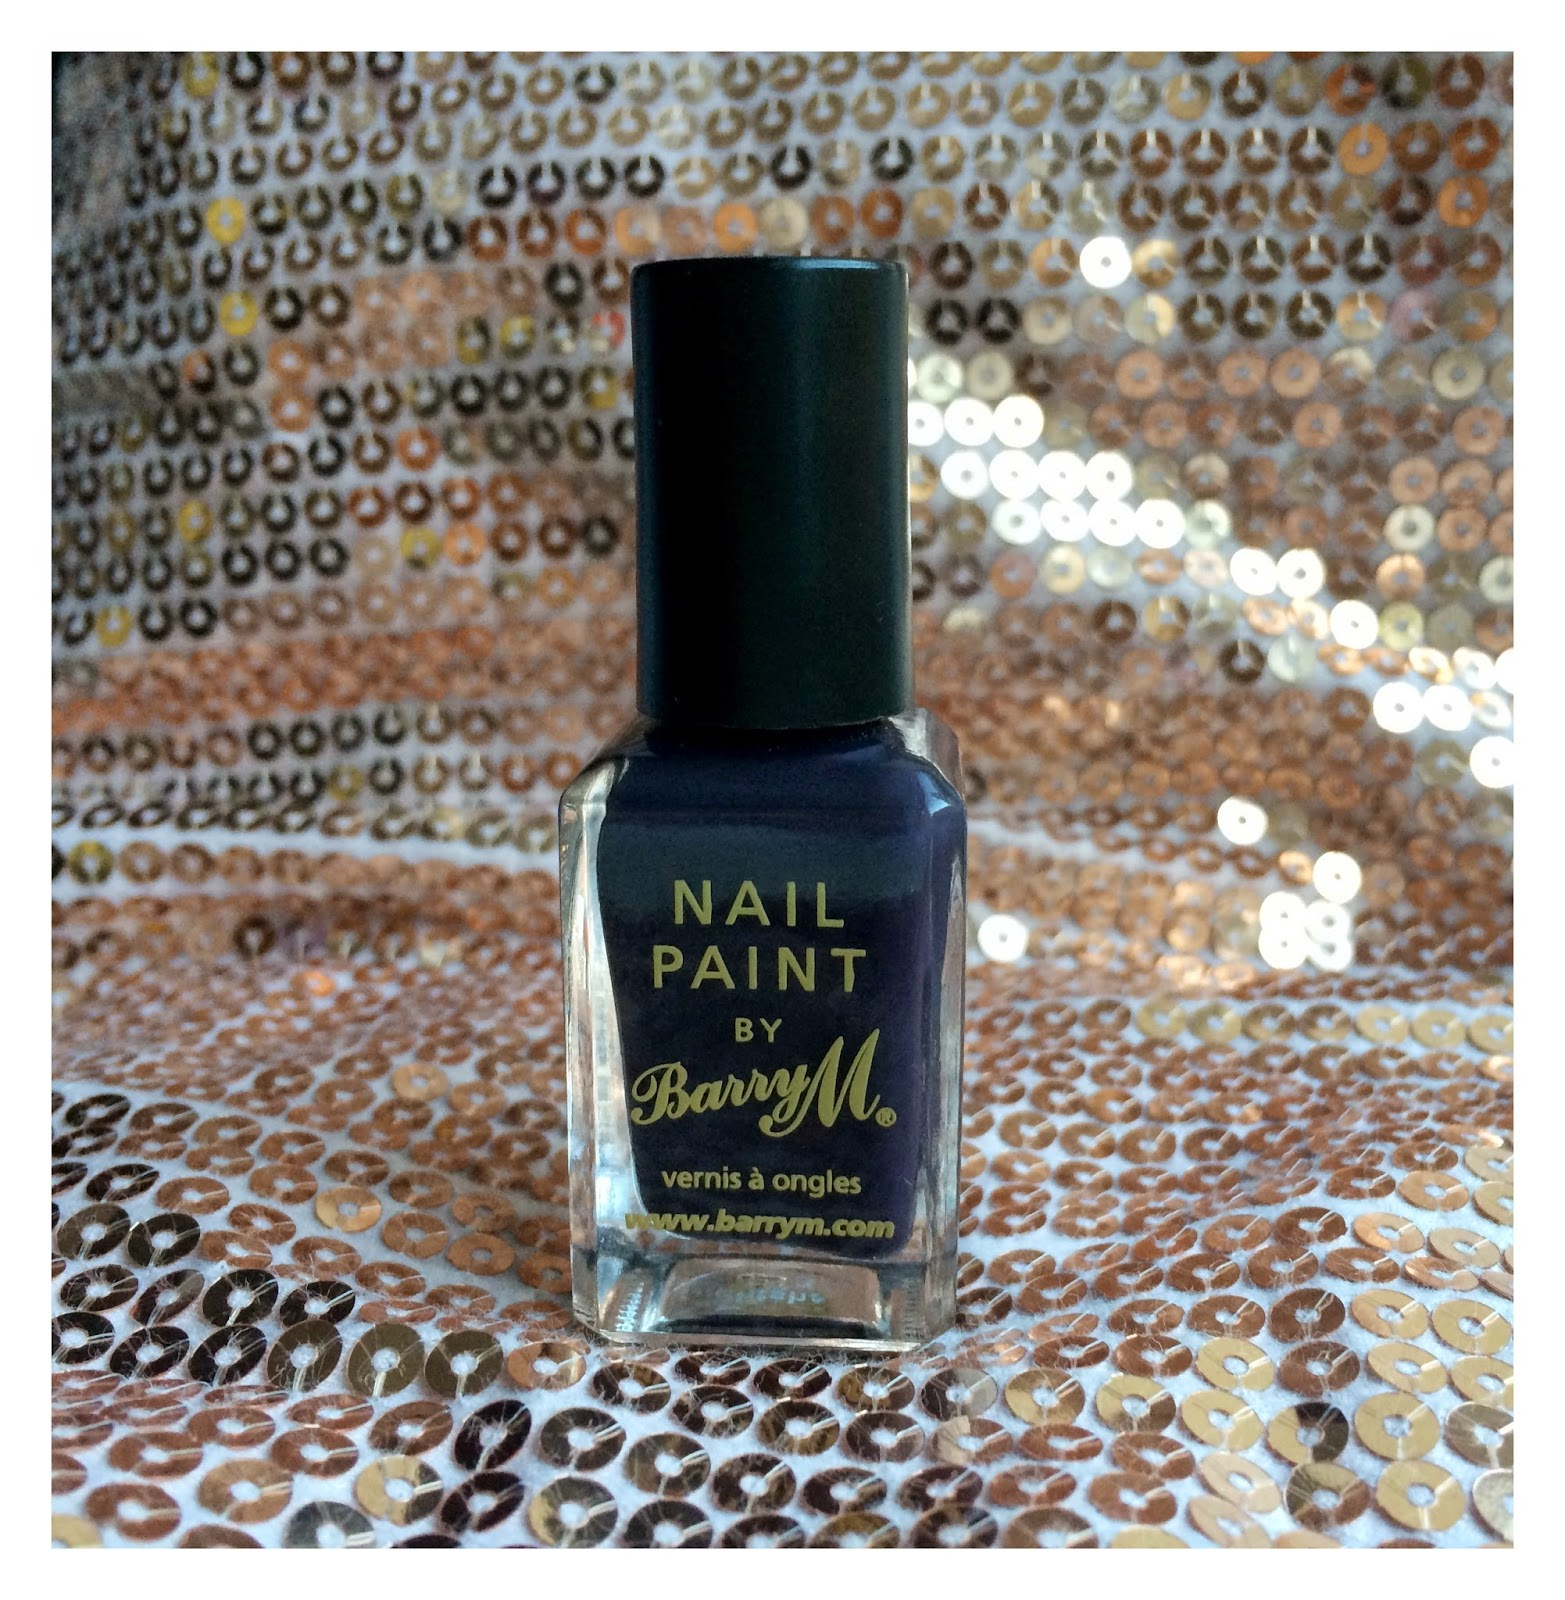 barry-m-nail-paint-nightshade-359-autumn